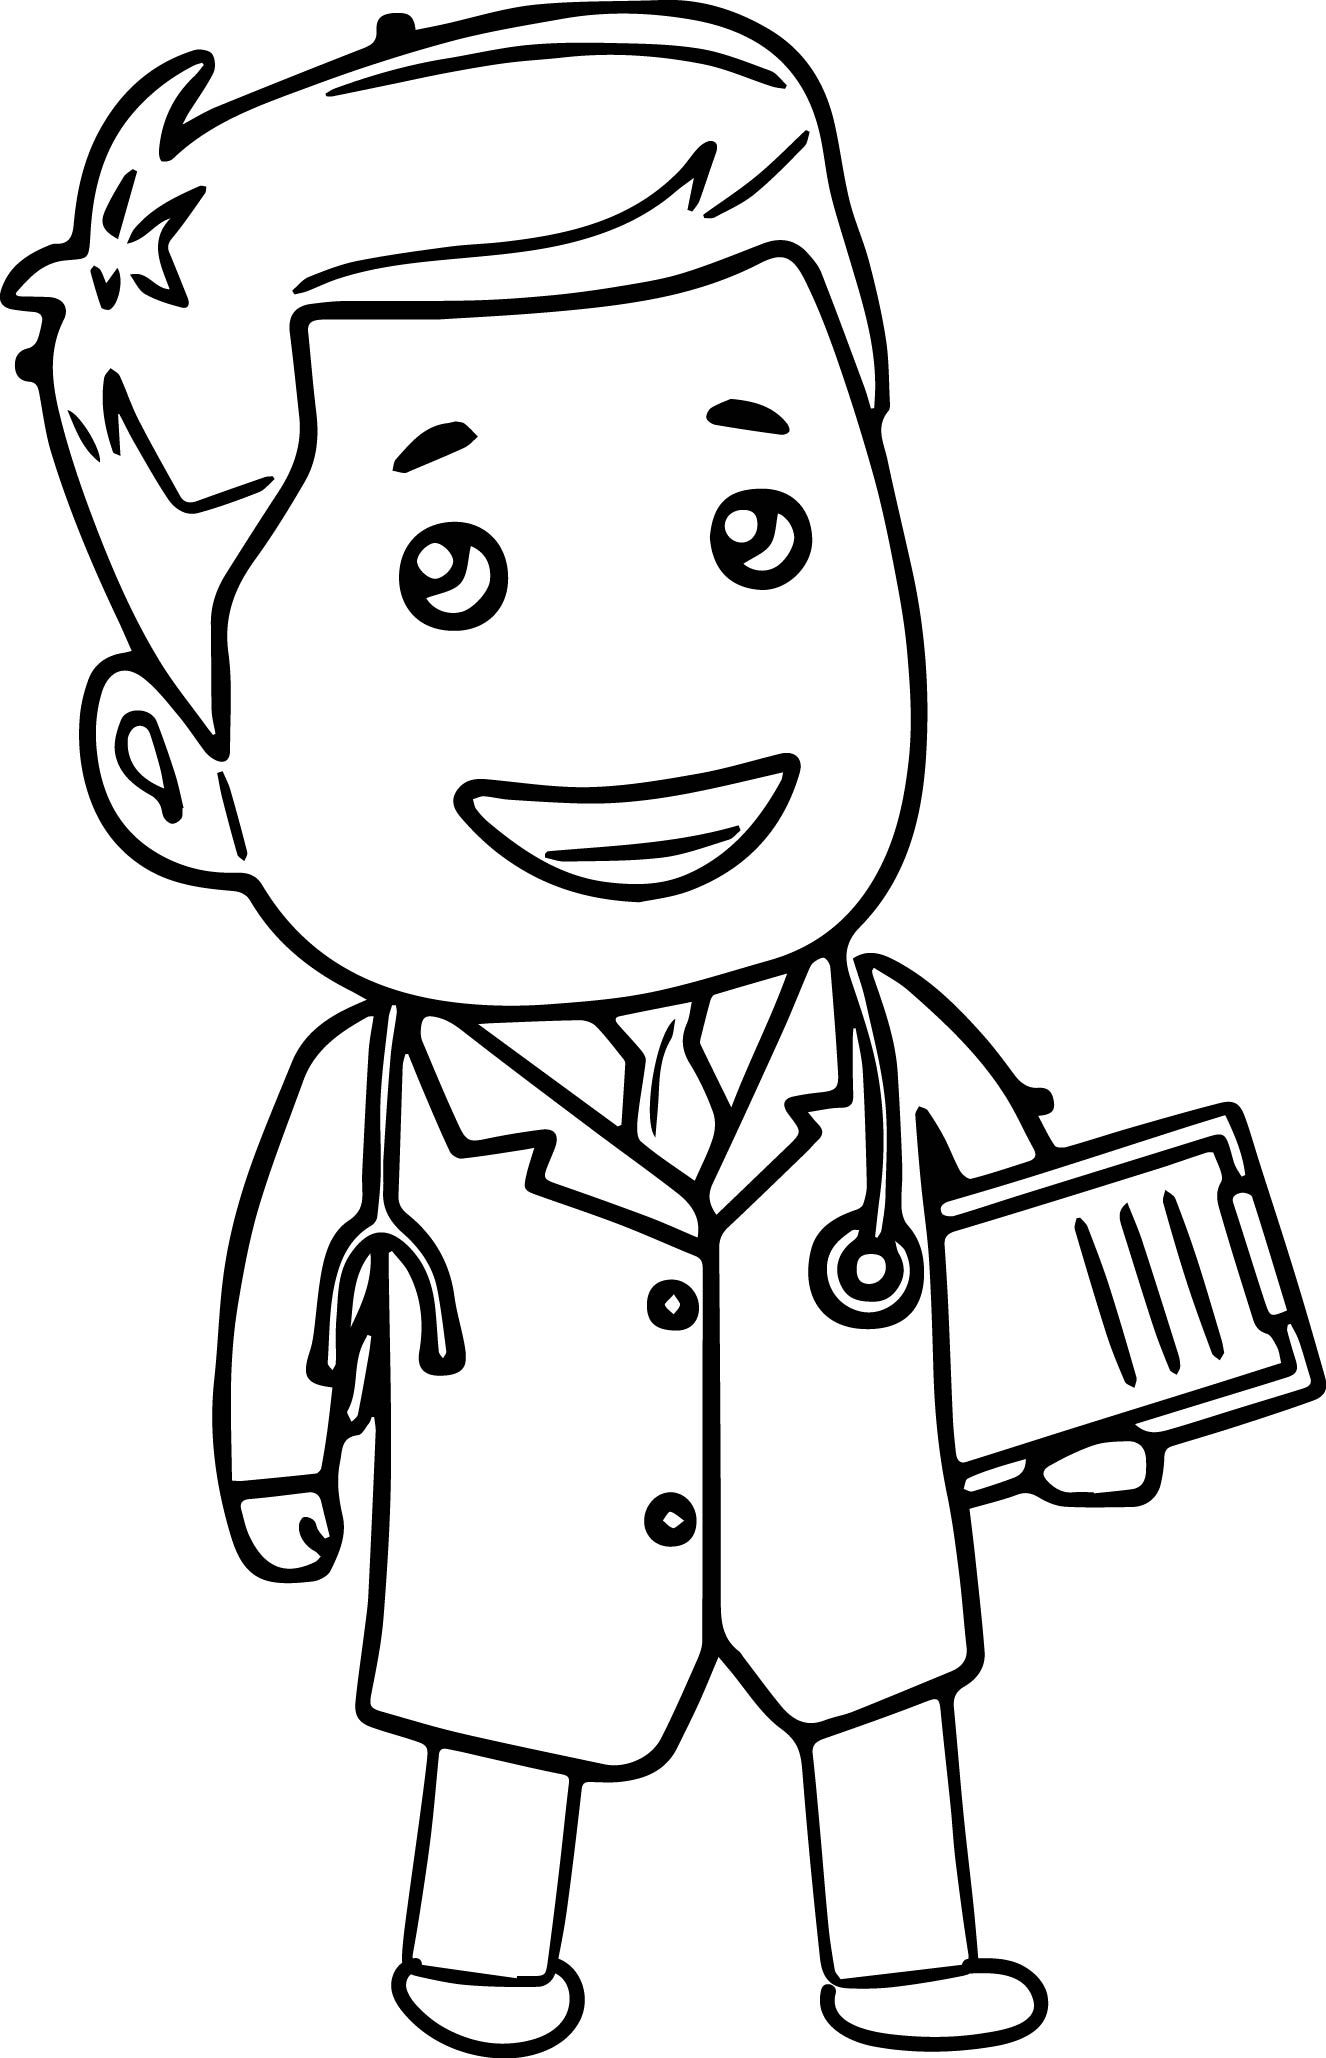 kids coloring pages doctor kit - photo#17